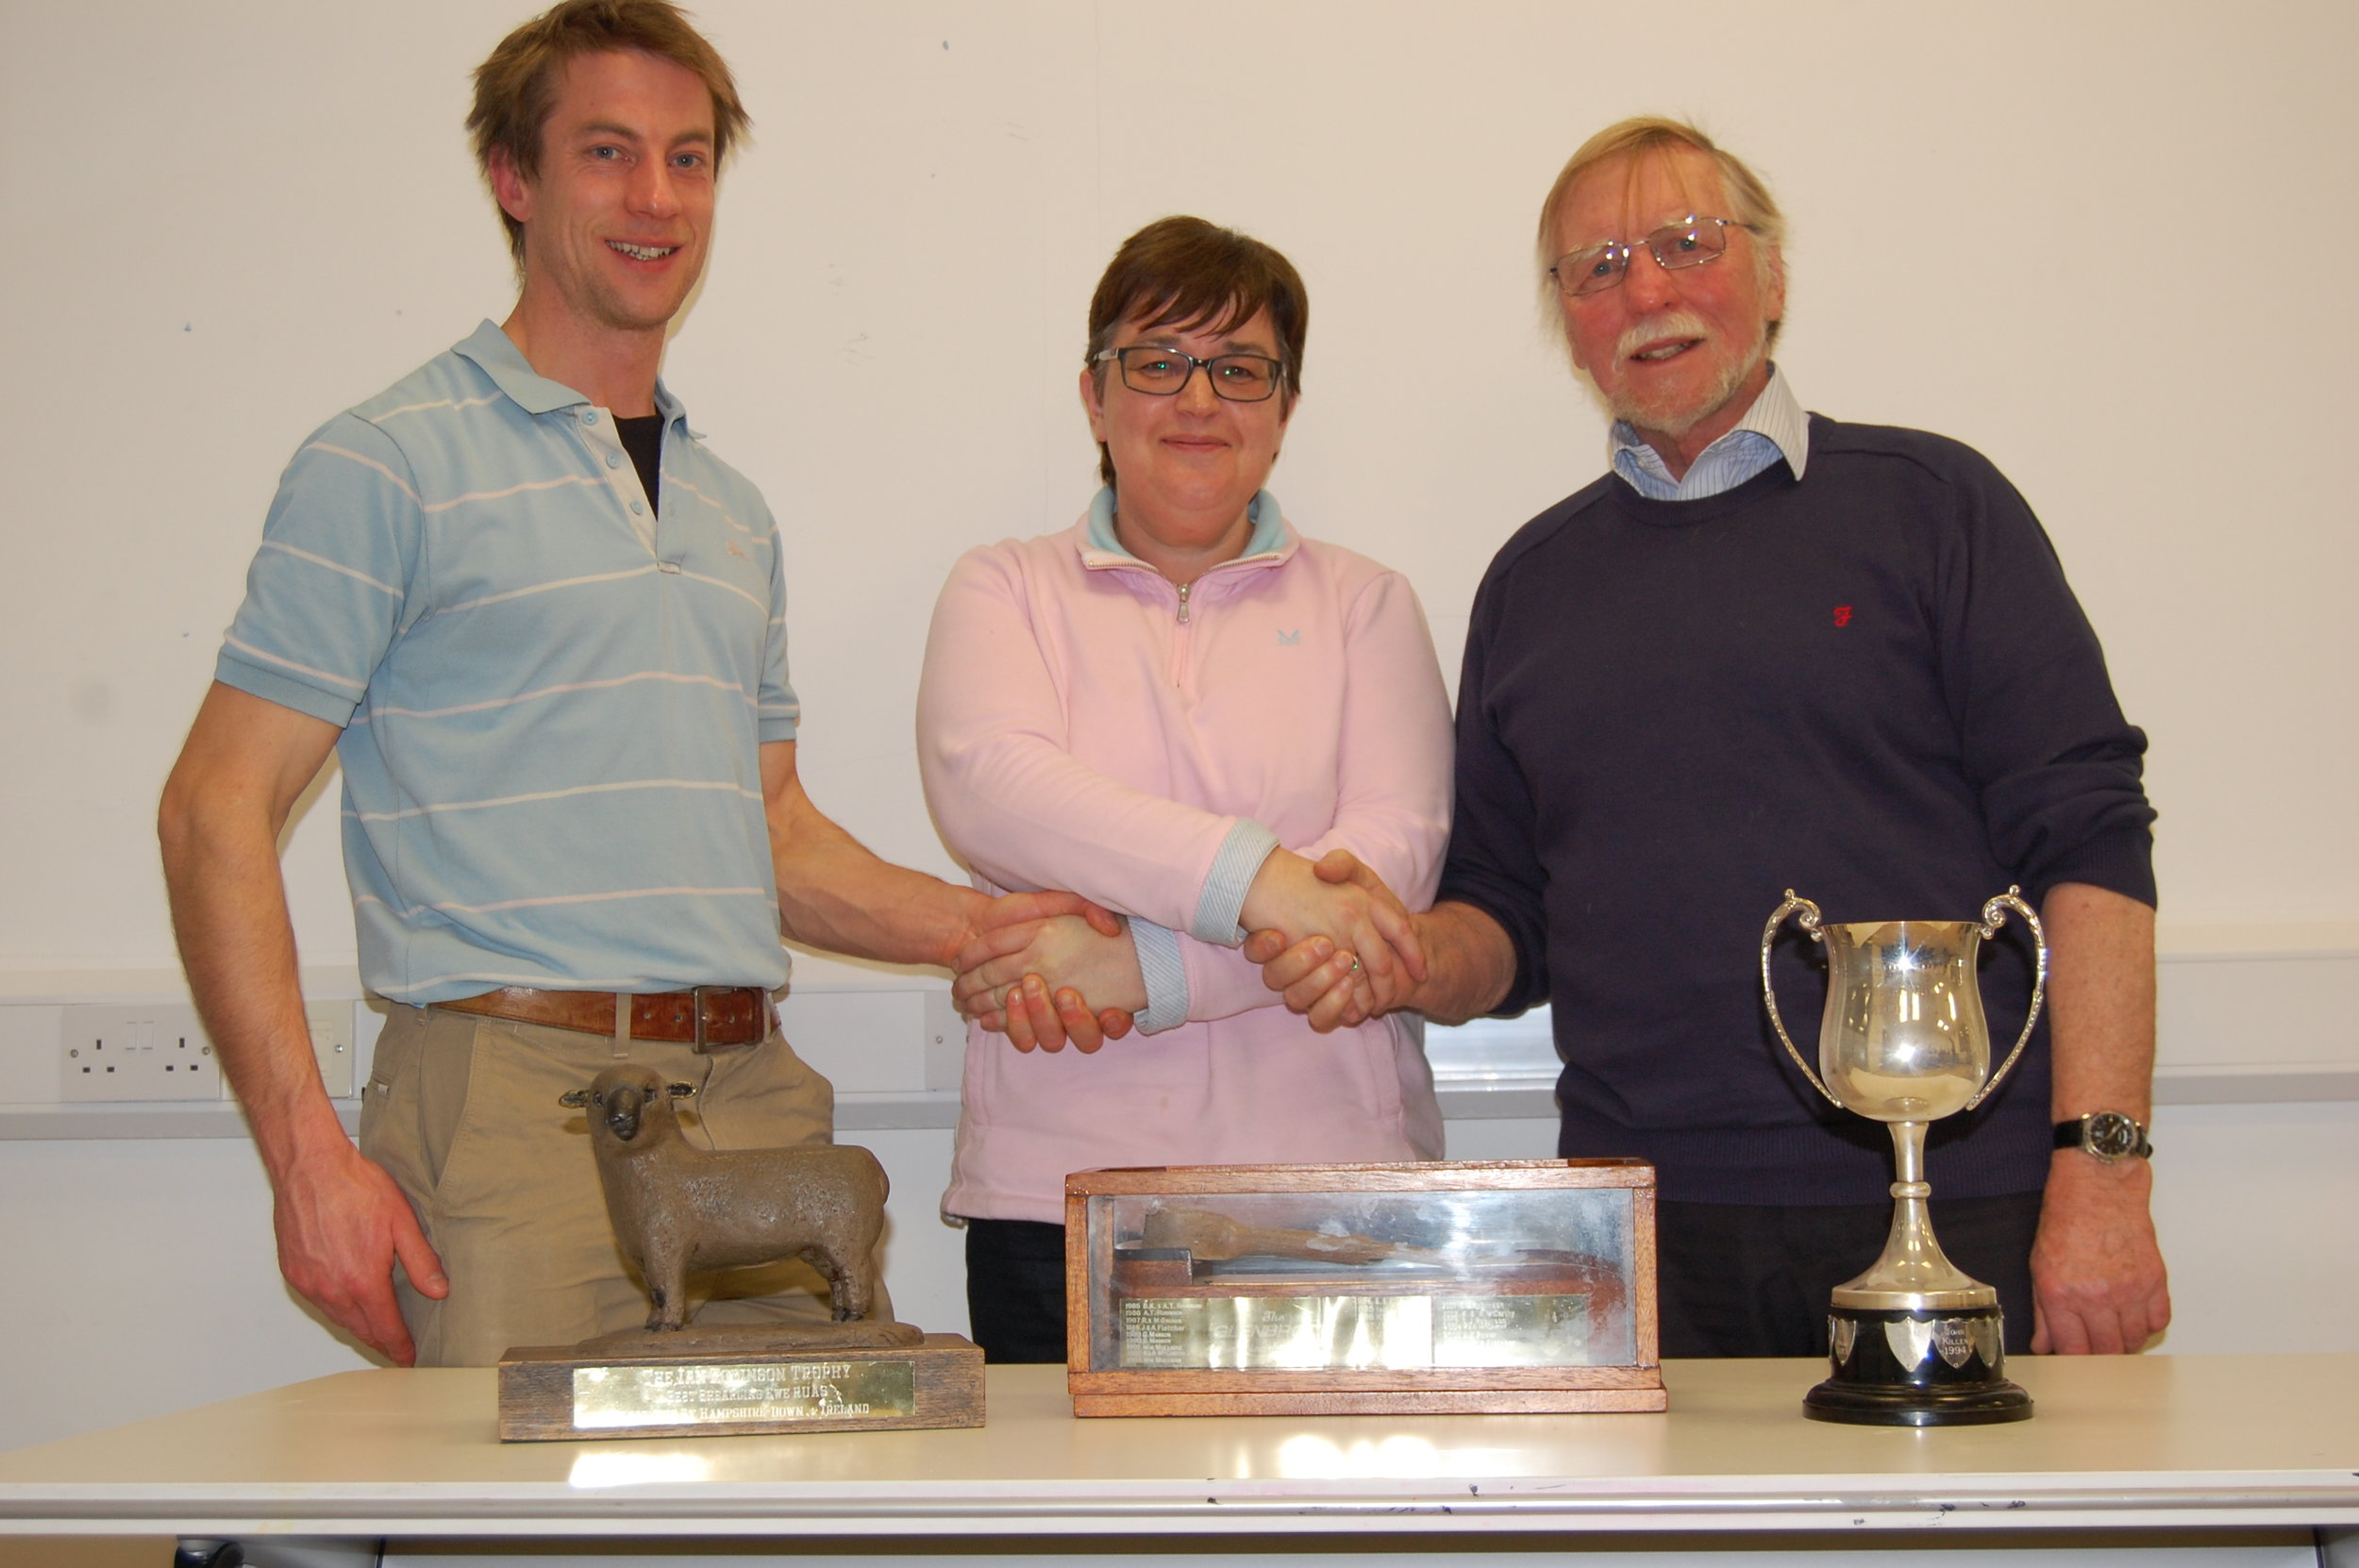 Jonathan and Jim Fletcher receive their prize from Chairwoman Josephine Wray